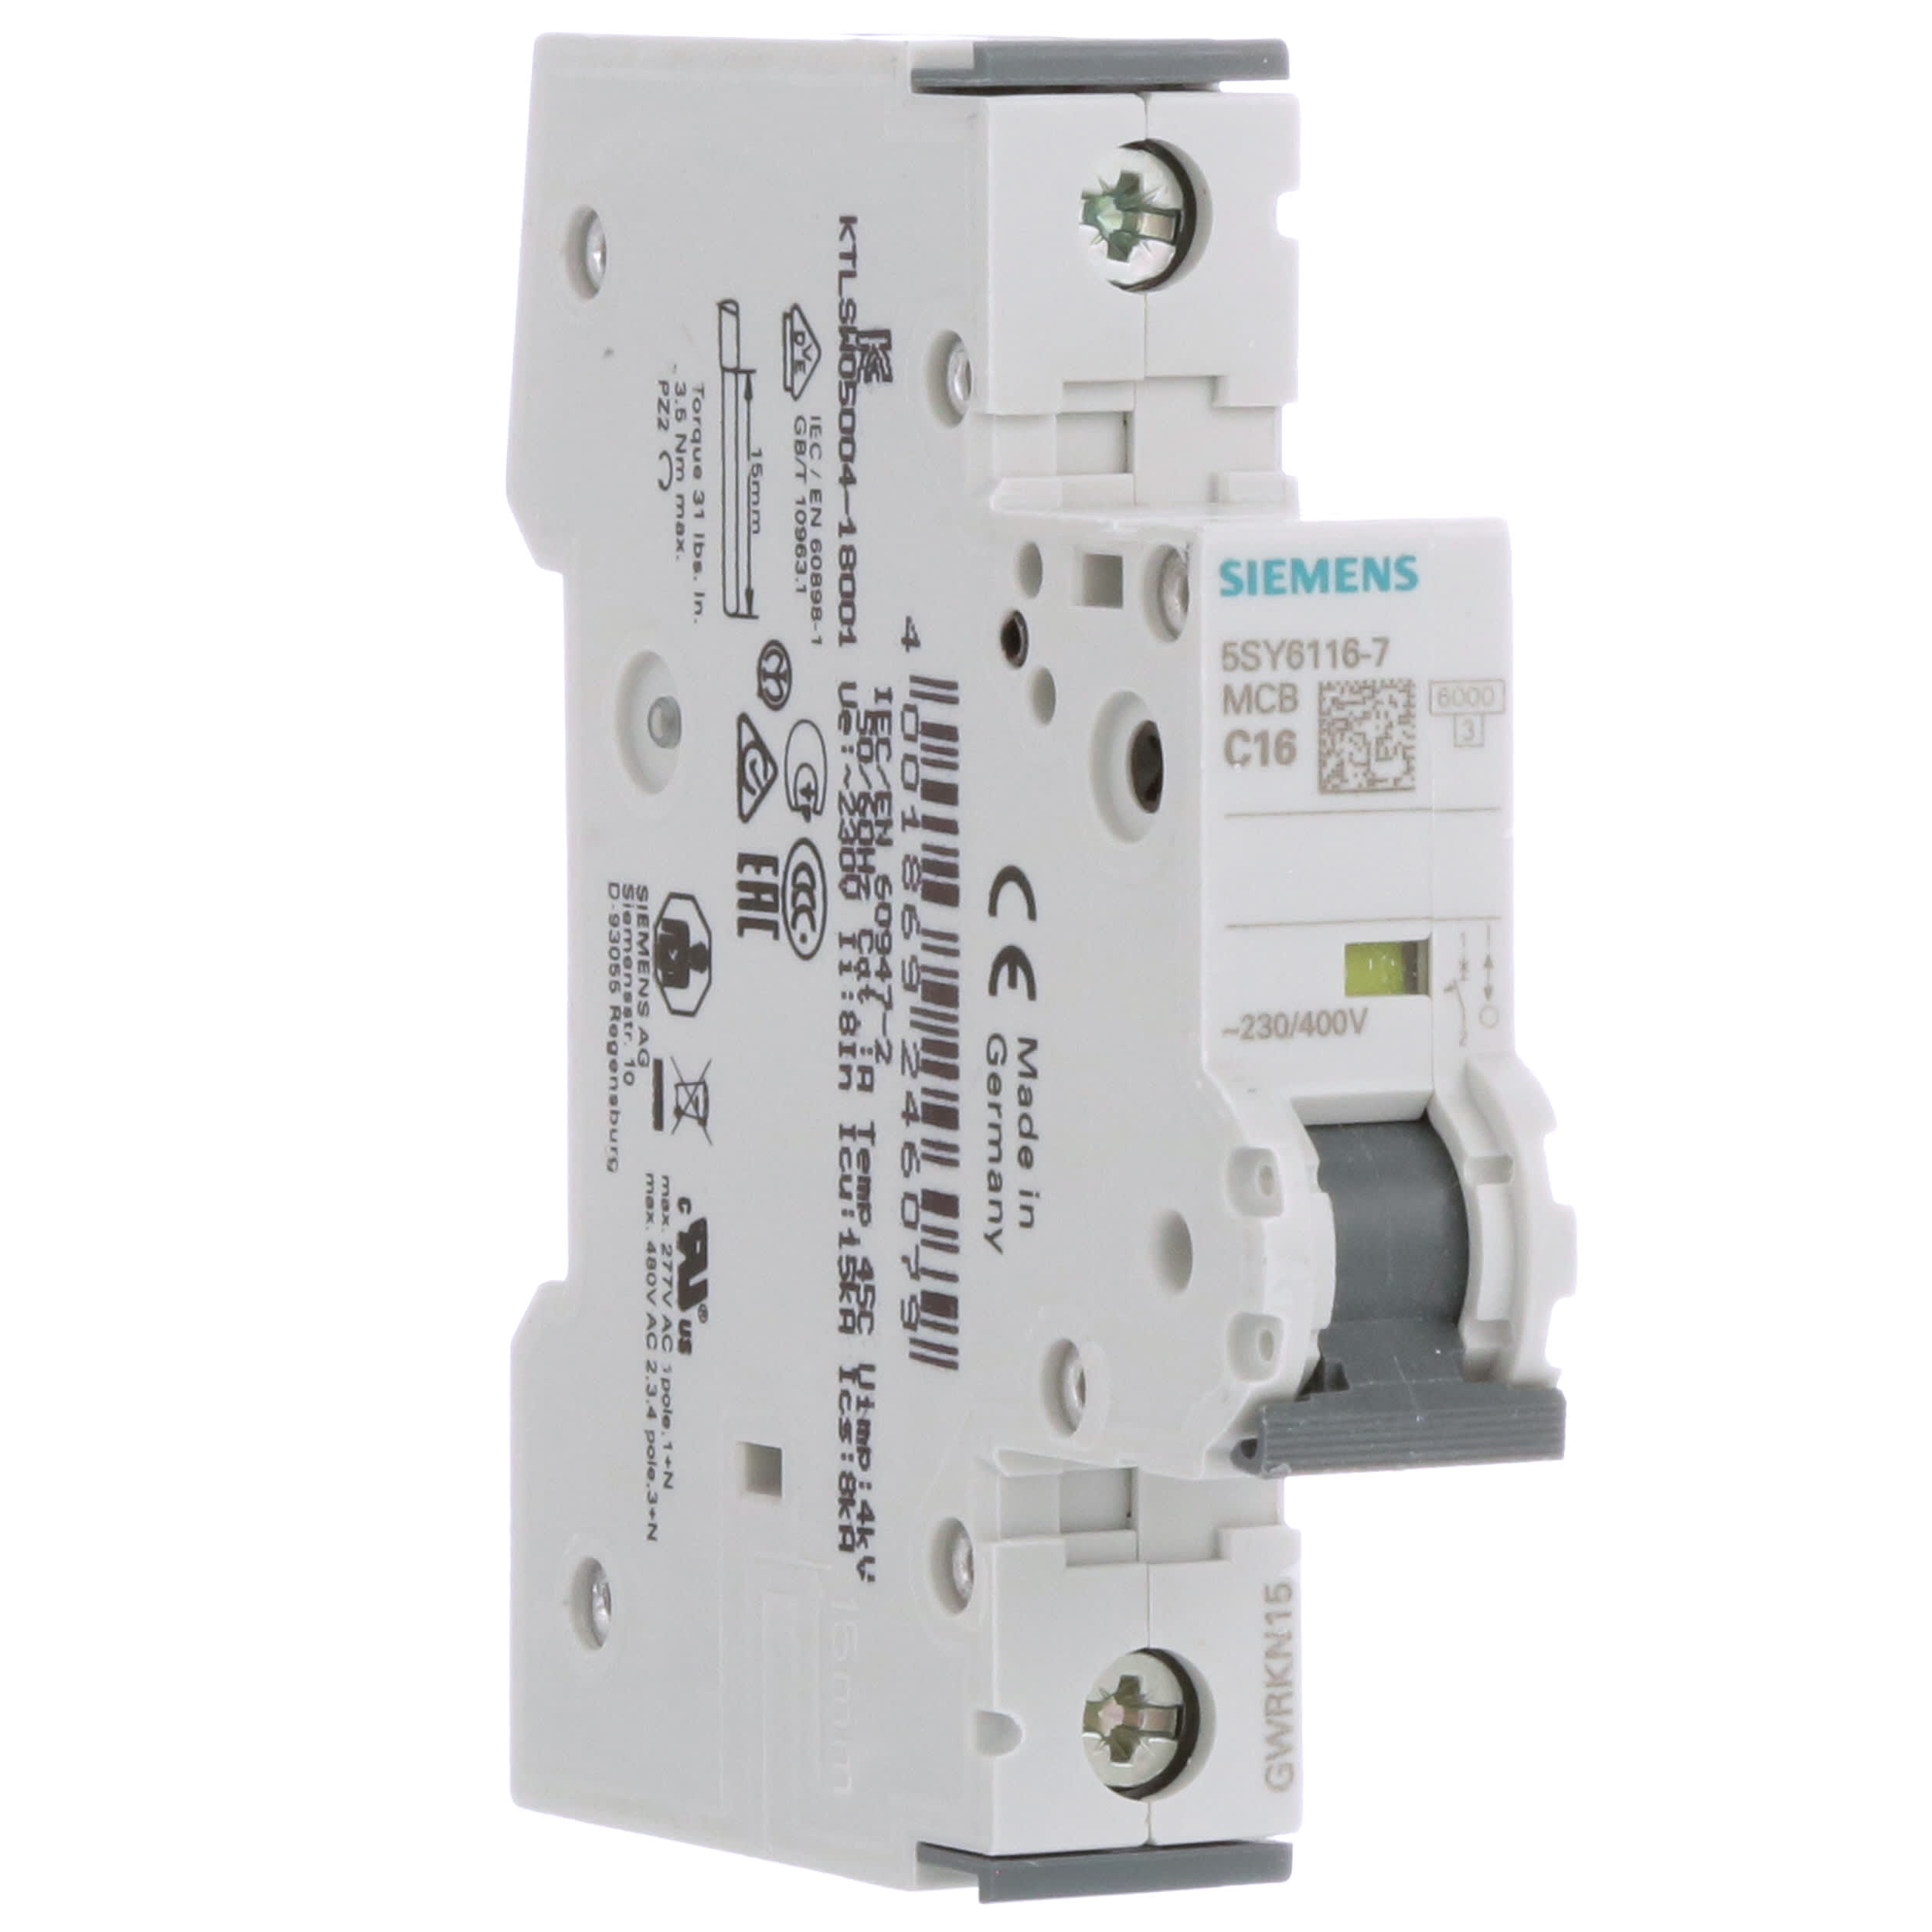 UL 1077 Rated 3 Pole Breaker Neutral 16 Ampere Maximum Tripping Characteristic C Siemens 5SY66167 Supplementary Protector